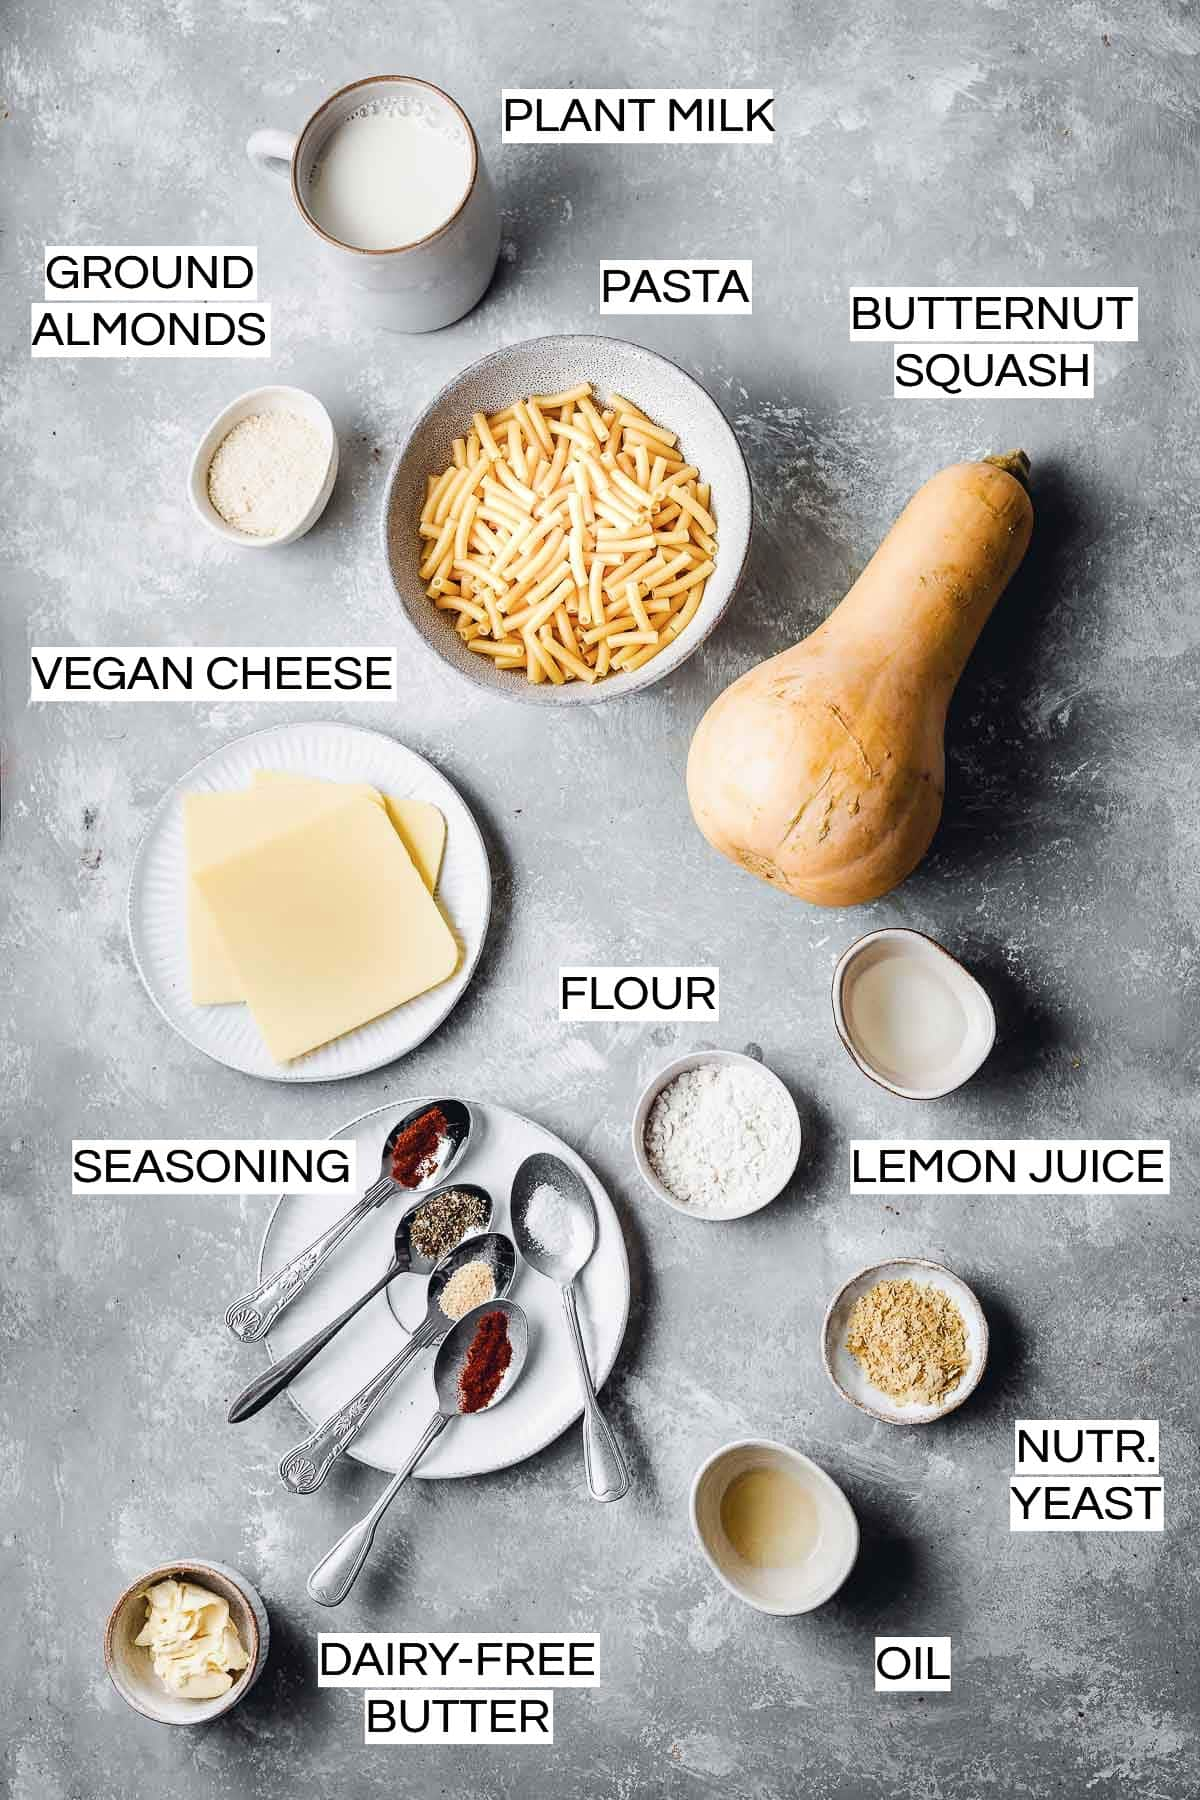 All ingredients needed to make baked vegan mac and cheese laid out on a flat surface.